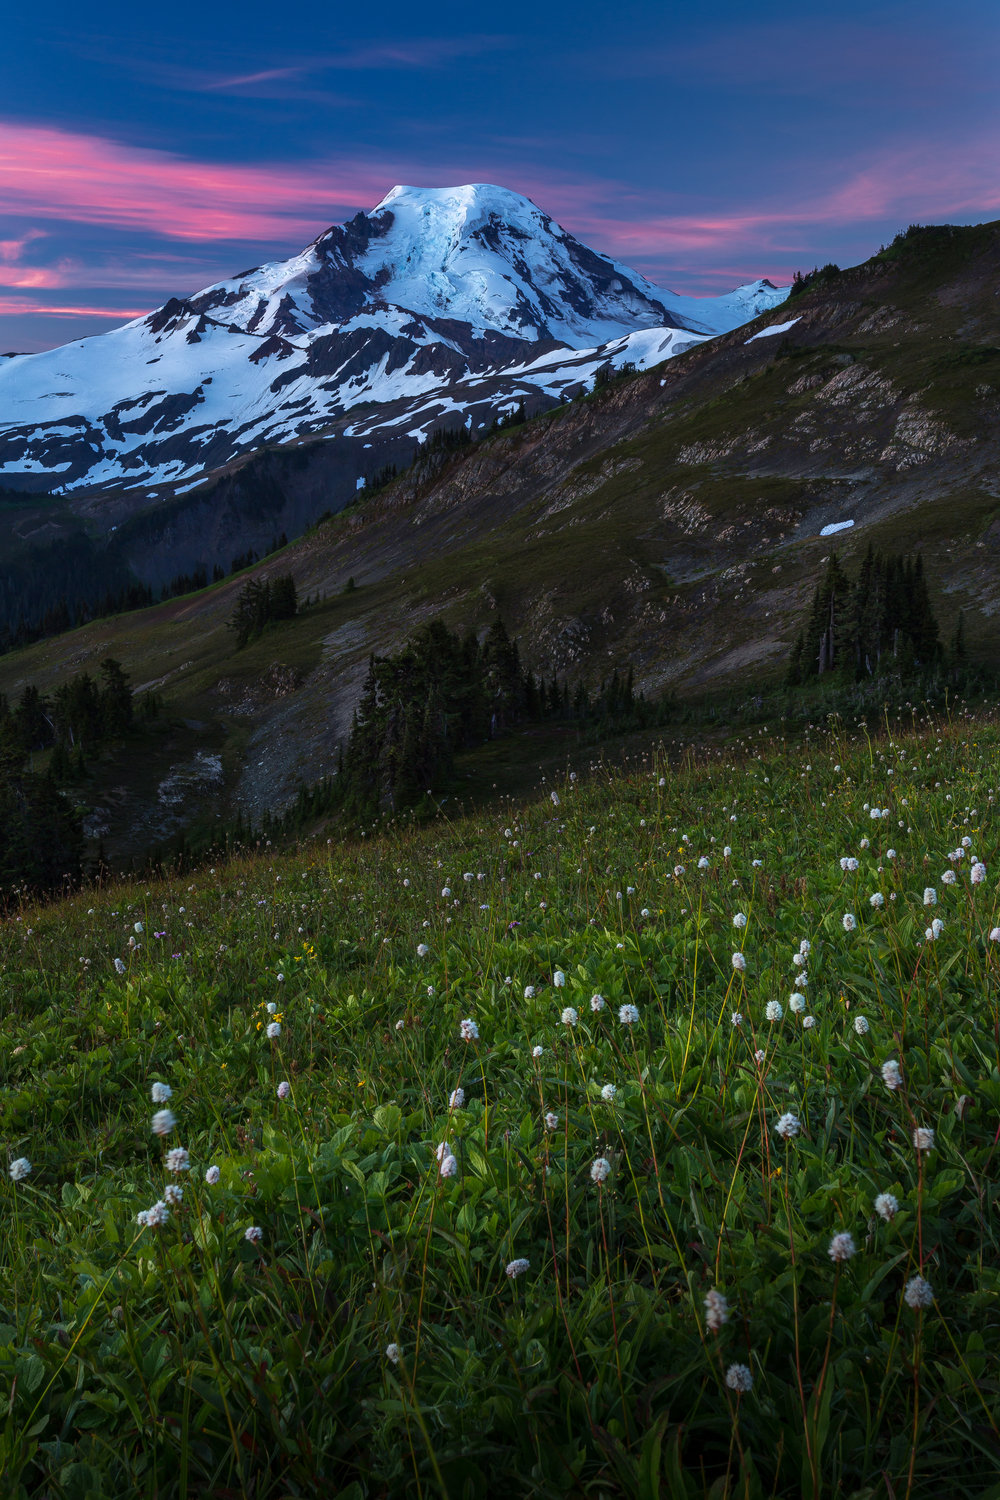 Mount Baker Wilderness, Washington